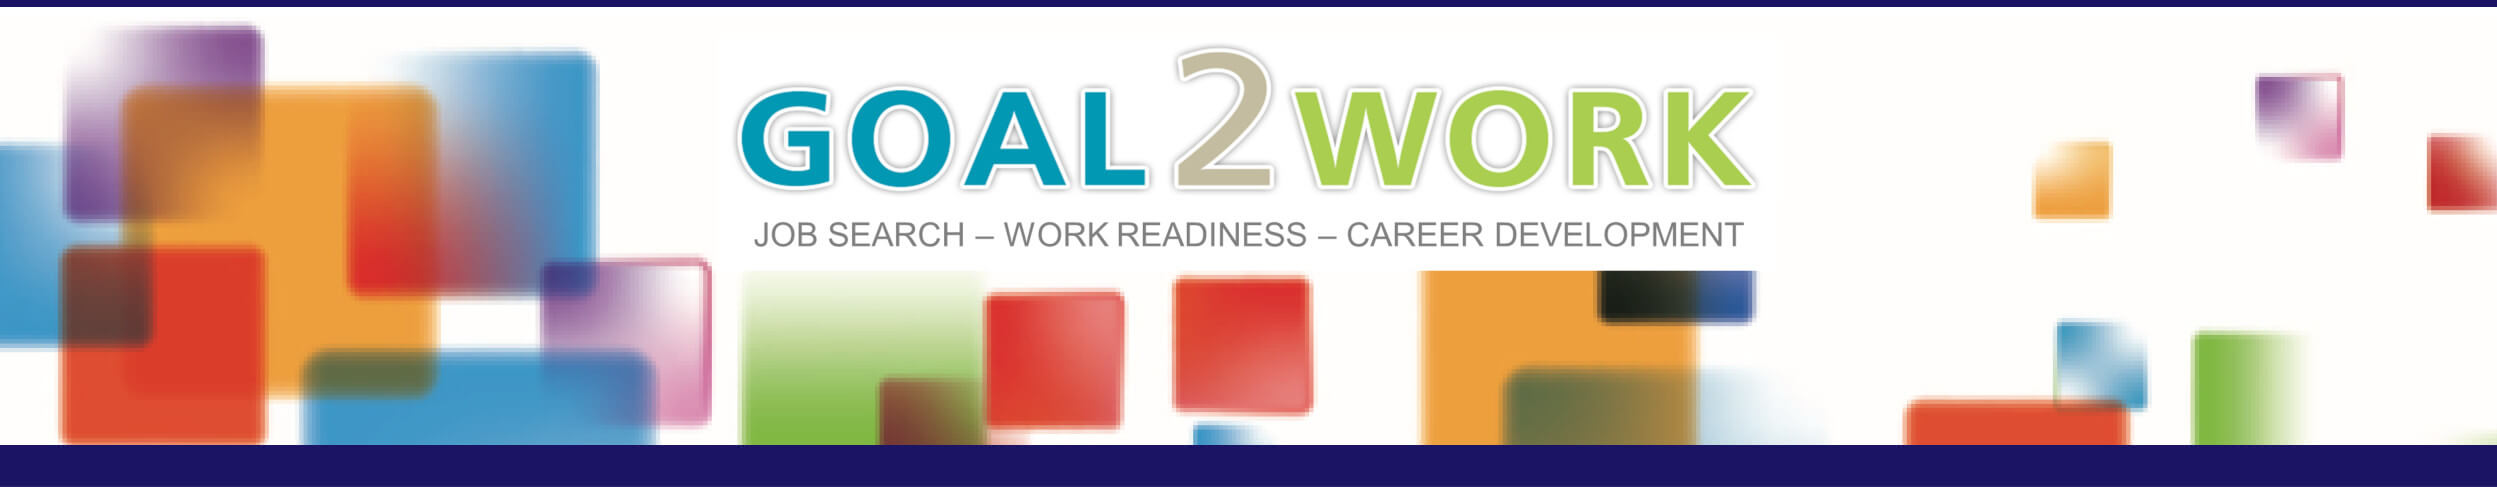 Goal2Work Employability and Job Search Skills Page Header